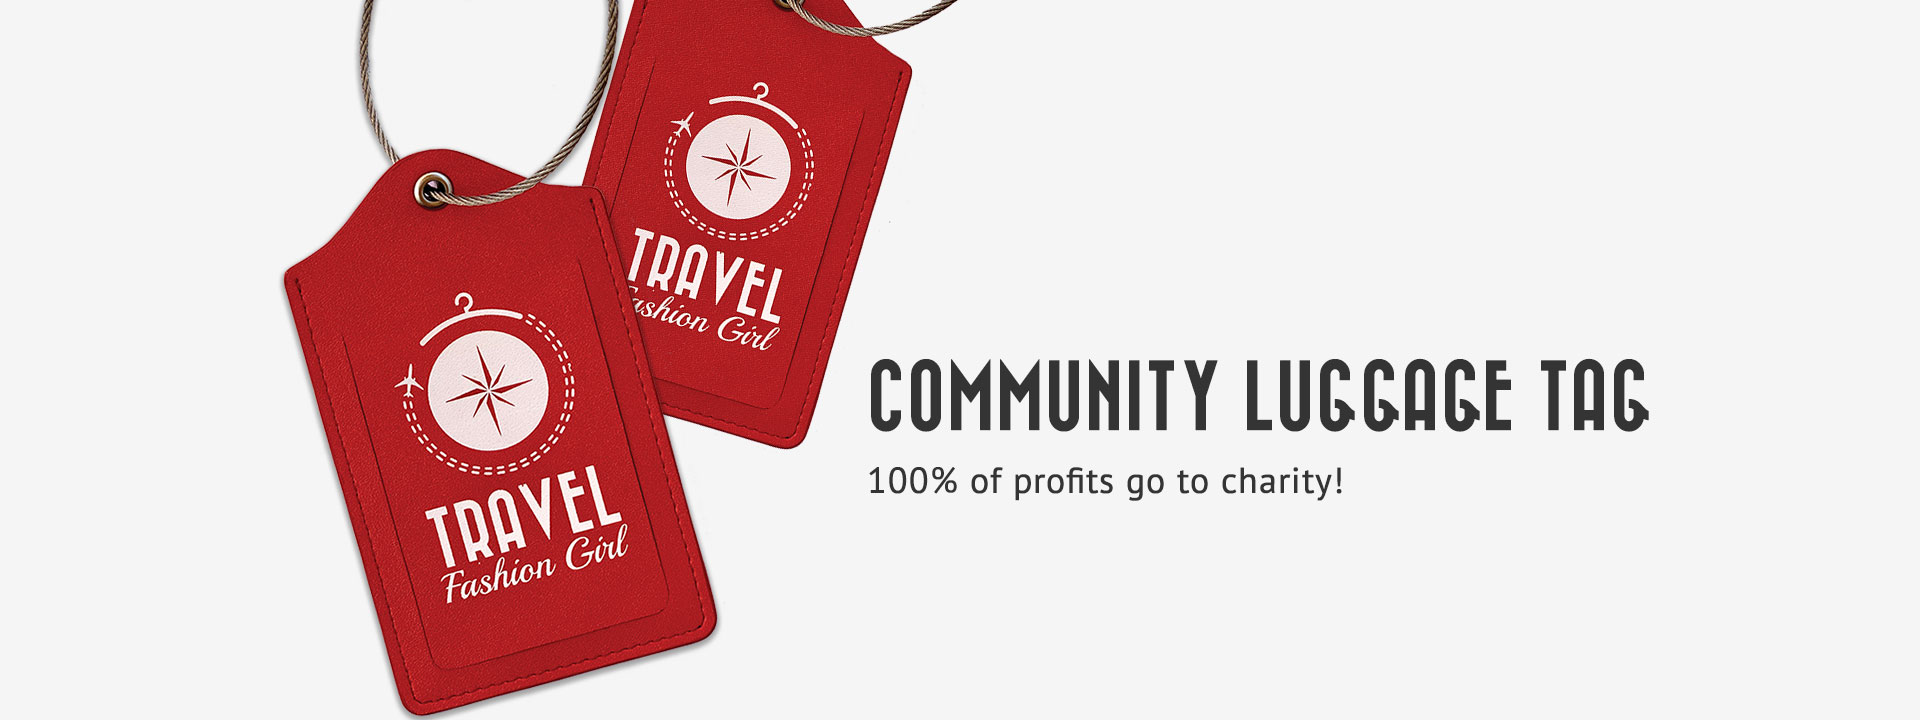 TFG Community Luggage Tags